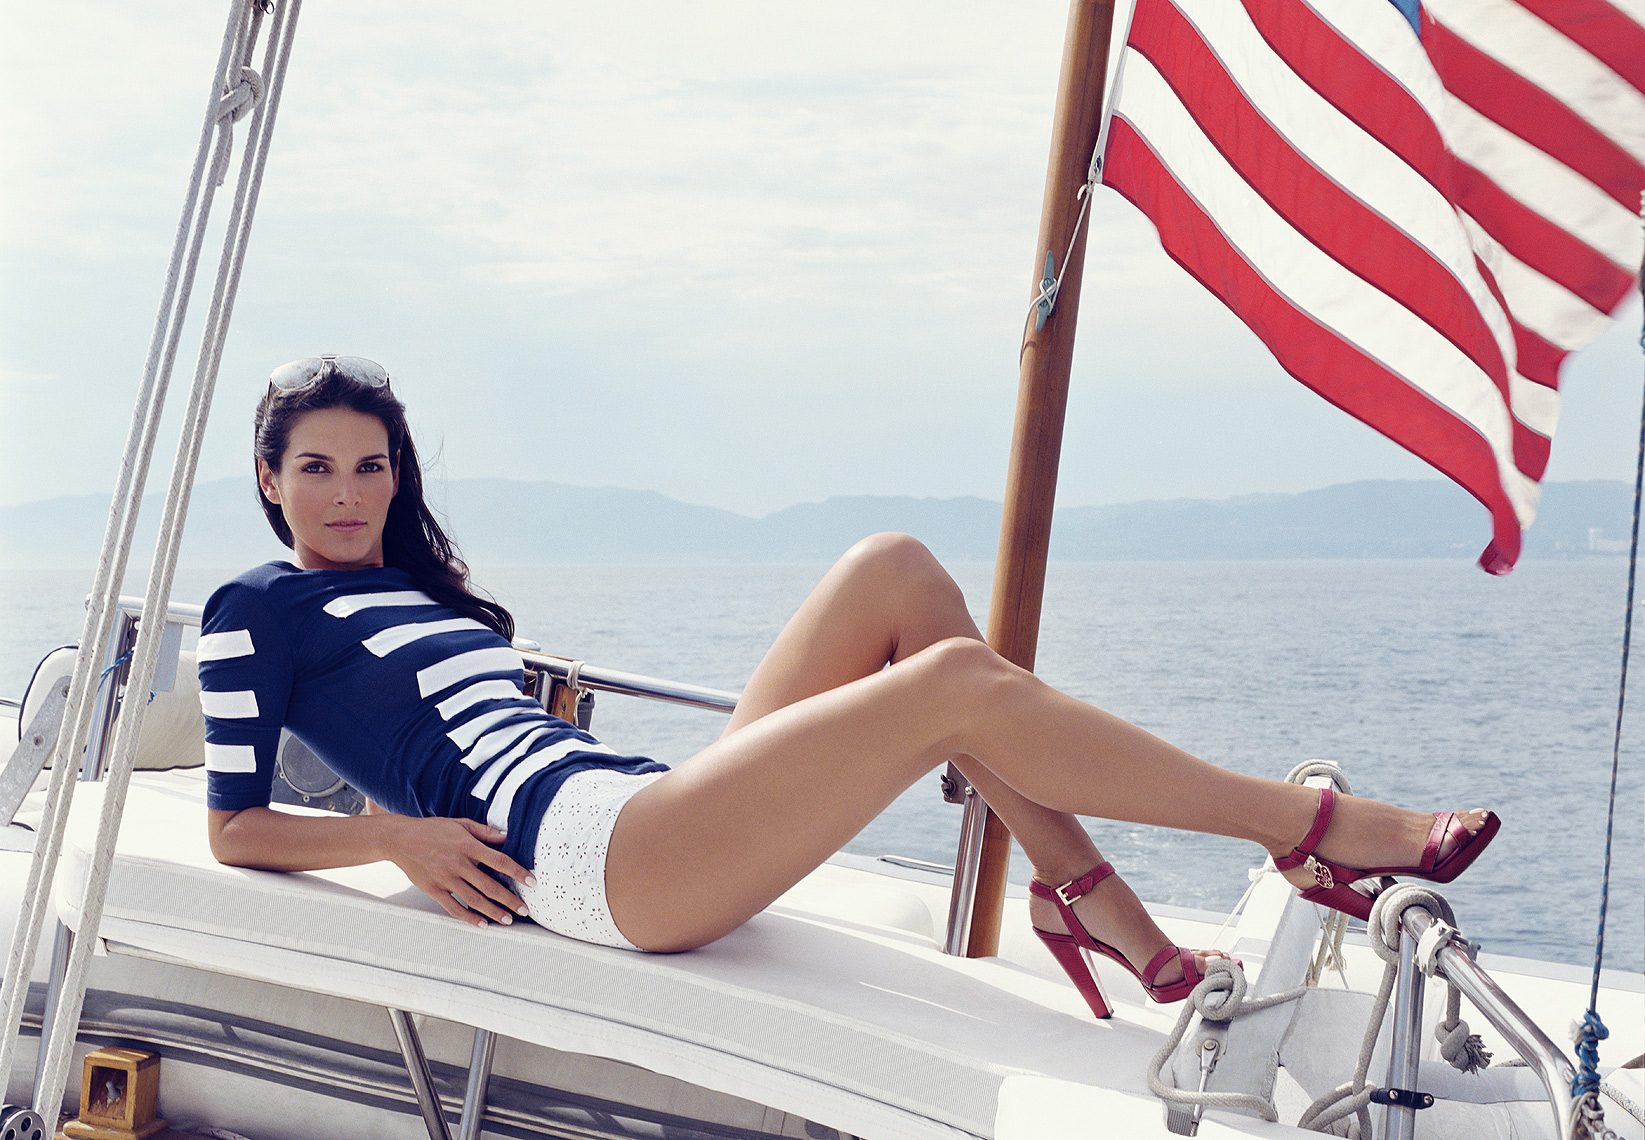 angie-harmon-by-robert-ascroft-2.jpg